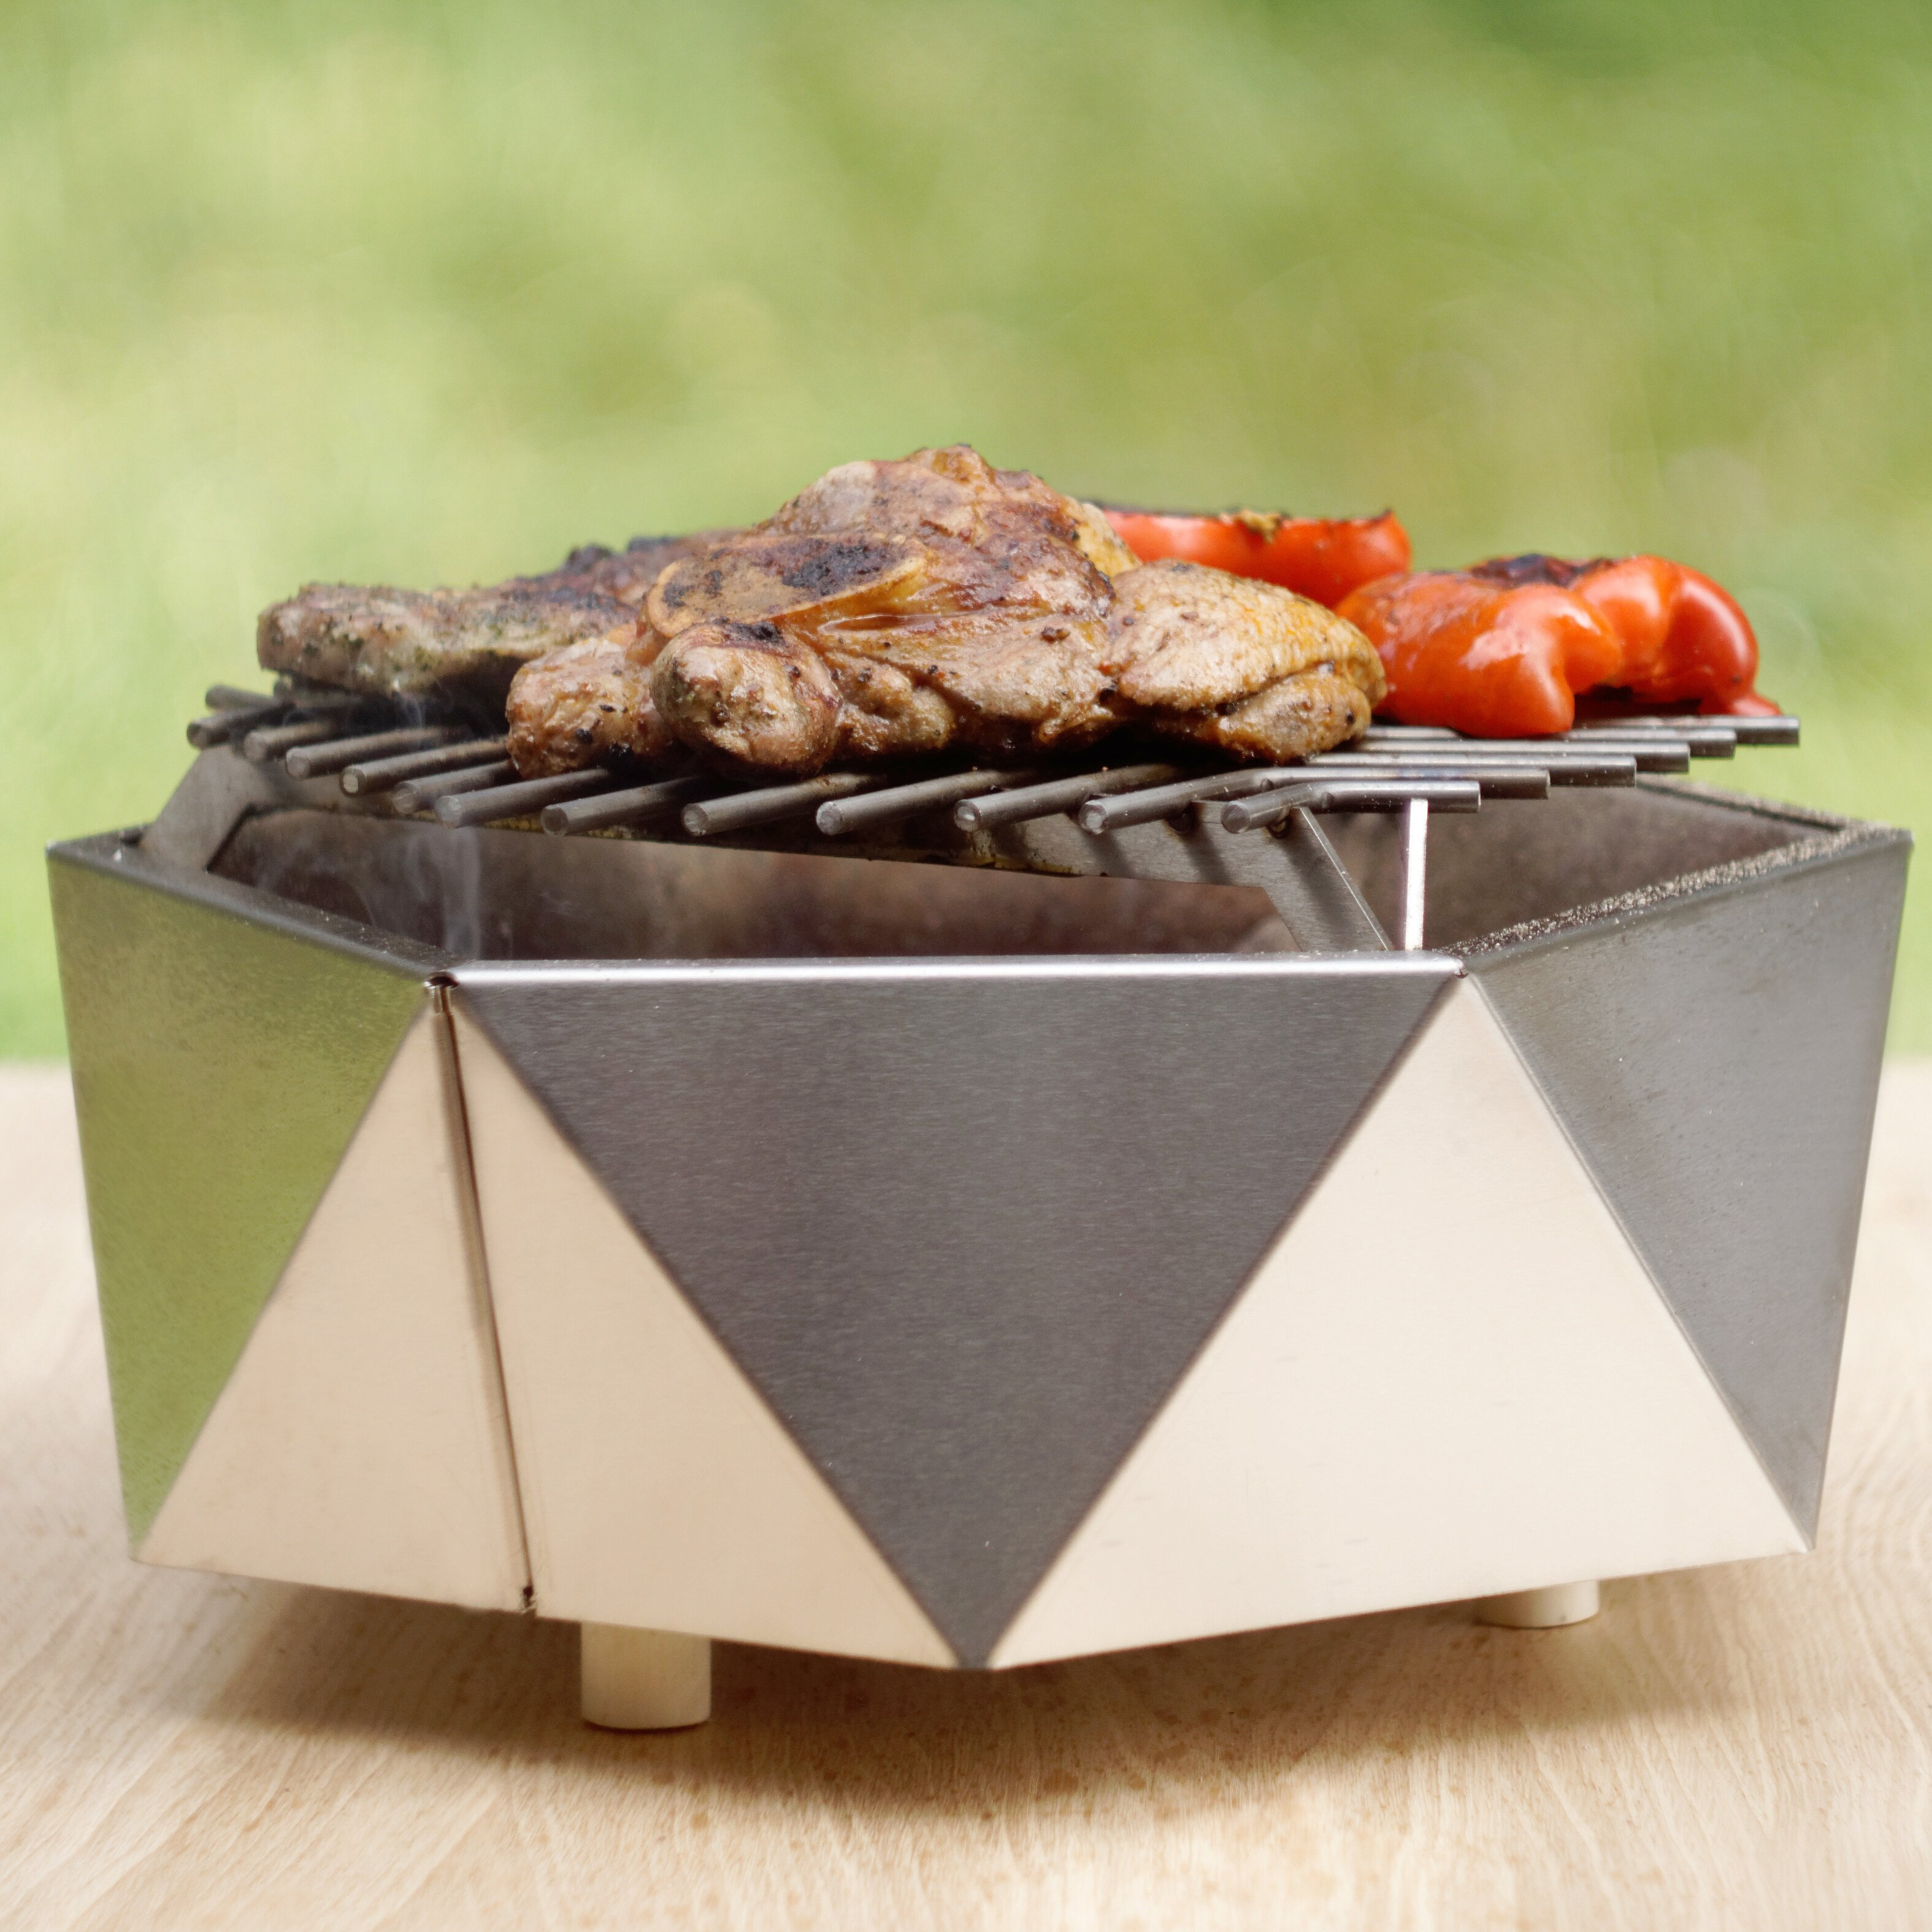 Curonian Stainless Steel Charcoal Tabletop Grill | Wayfair